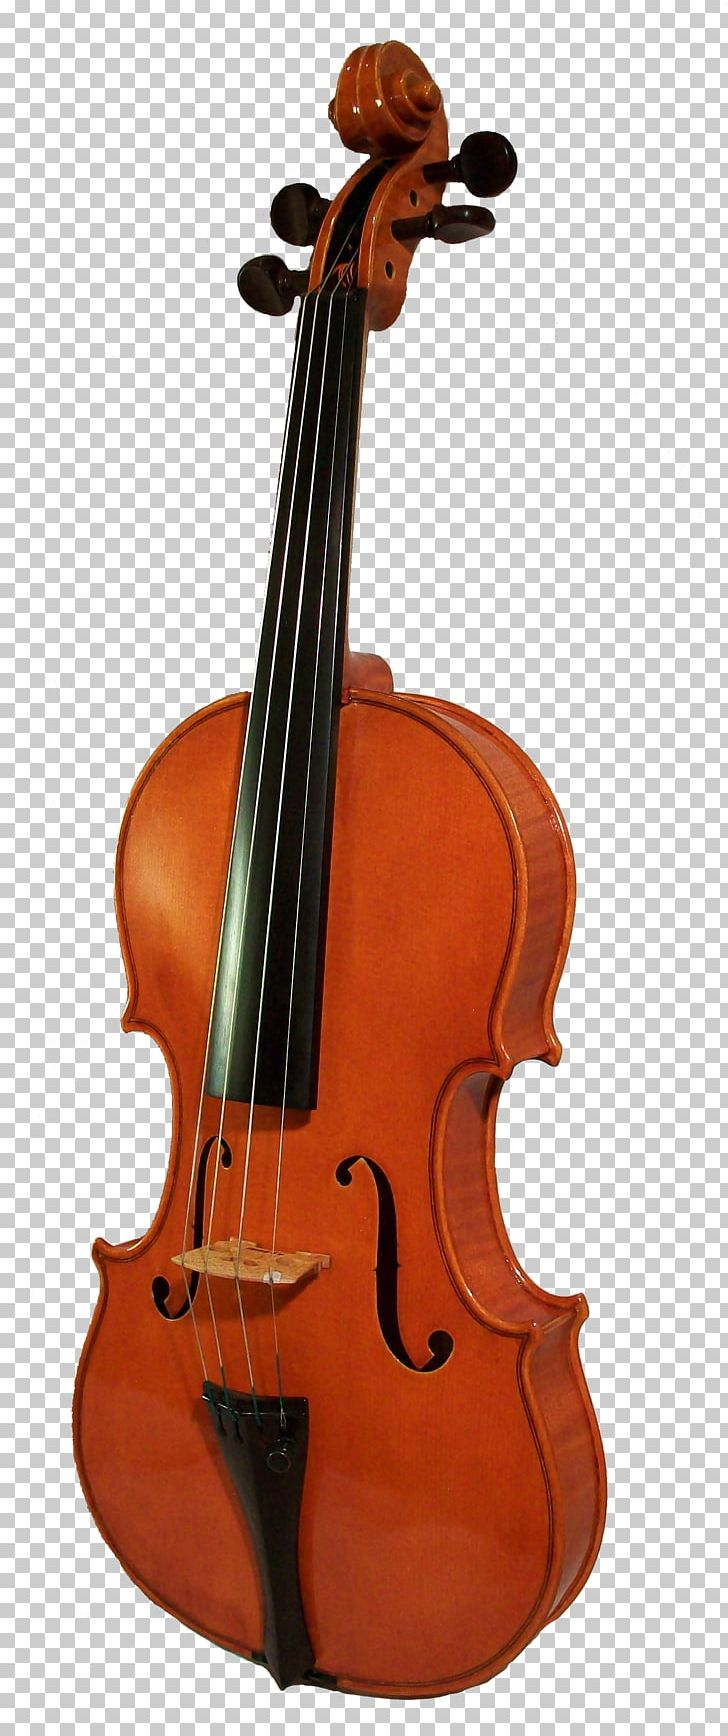 Cello clipart classical instrument. Violin musical png acoustic